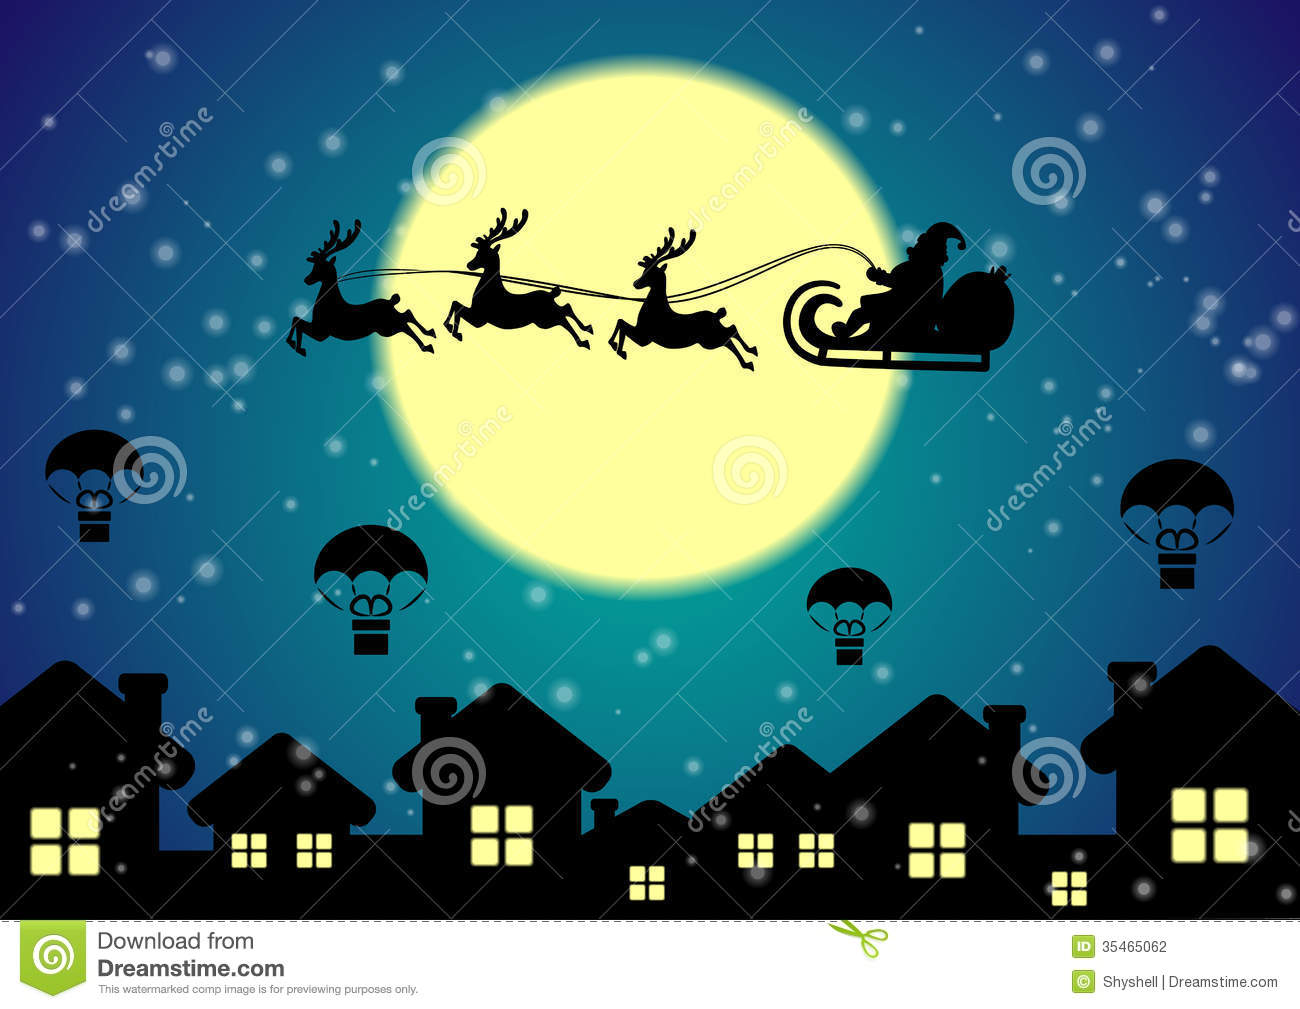 Free Animated Snow Fall Wallpaper Santa Claus With Reindeer Flies Over Night City Stock